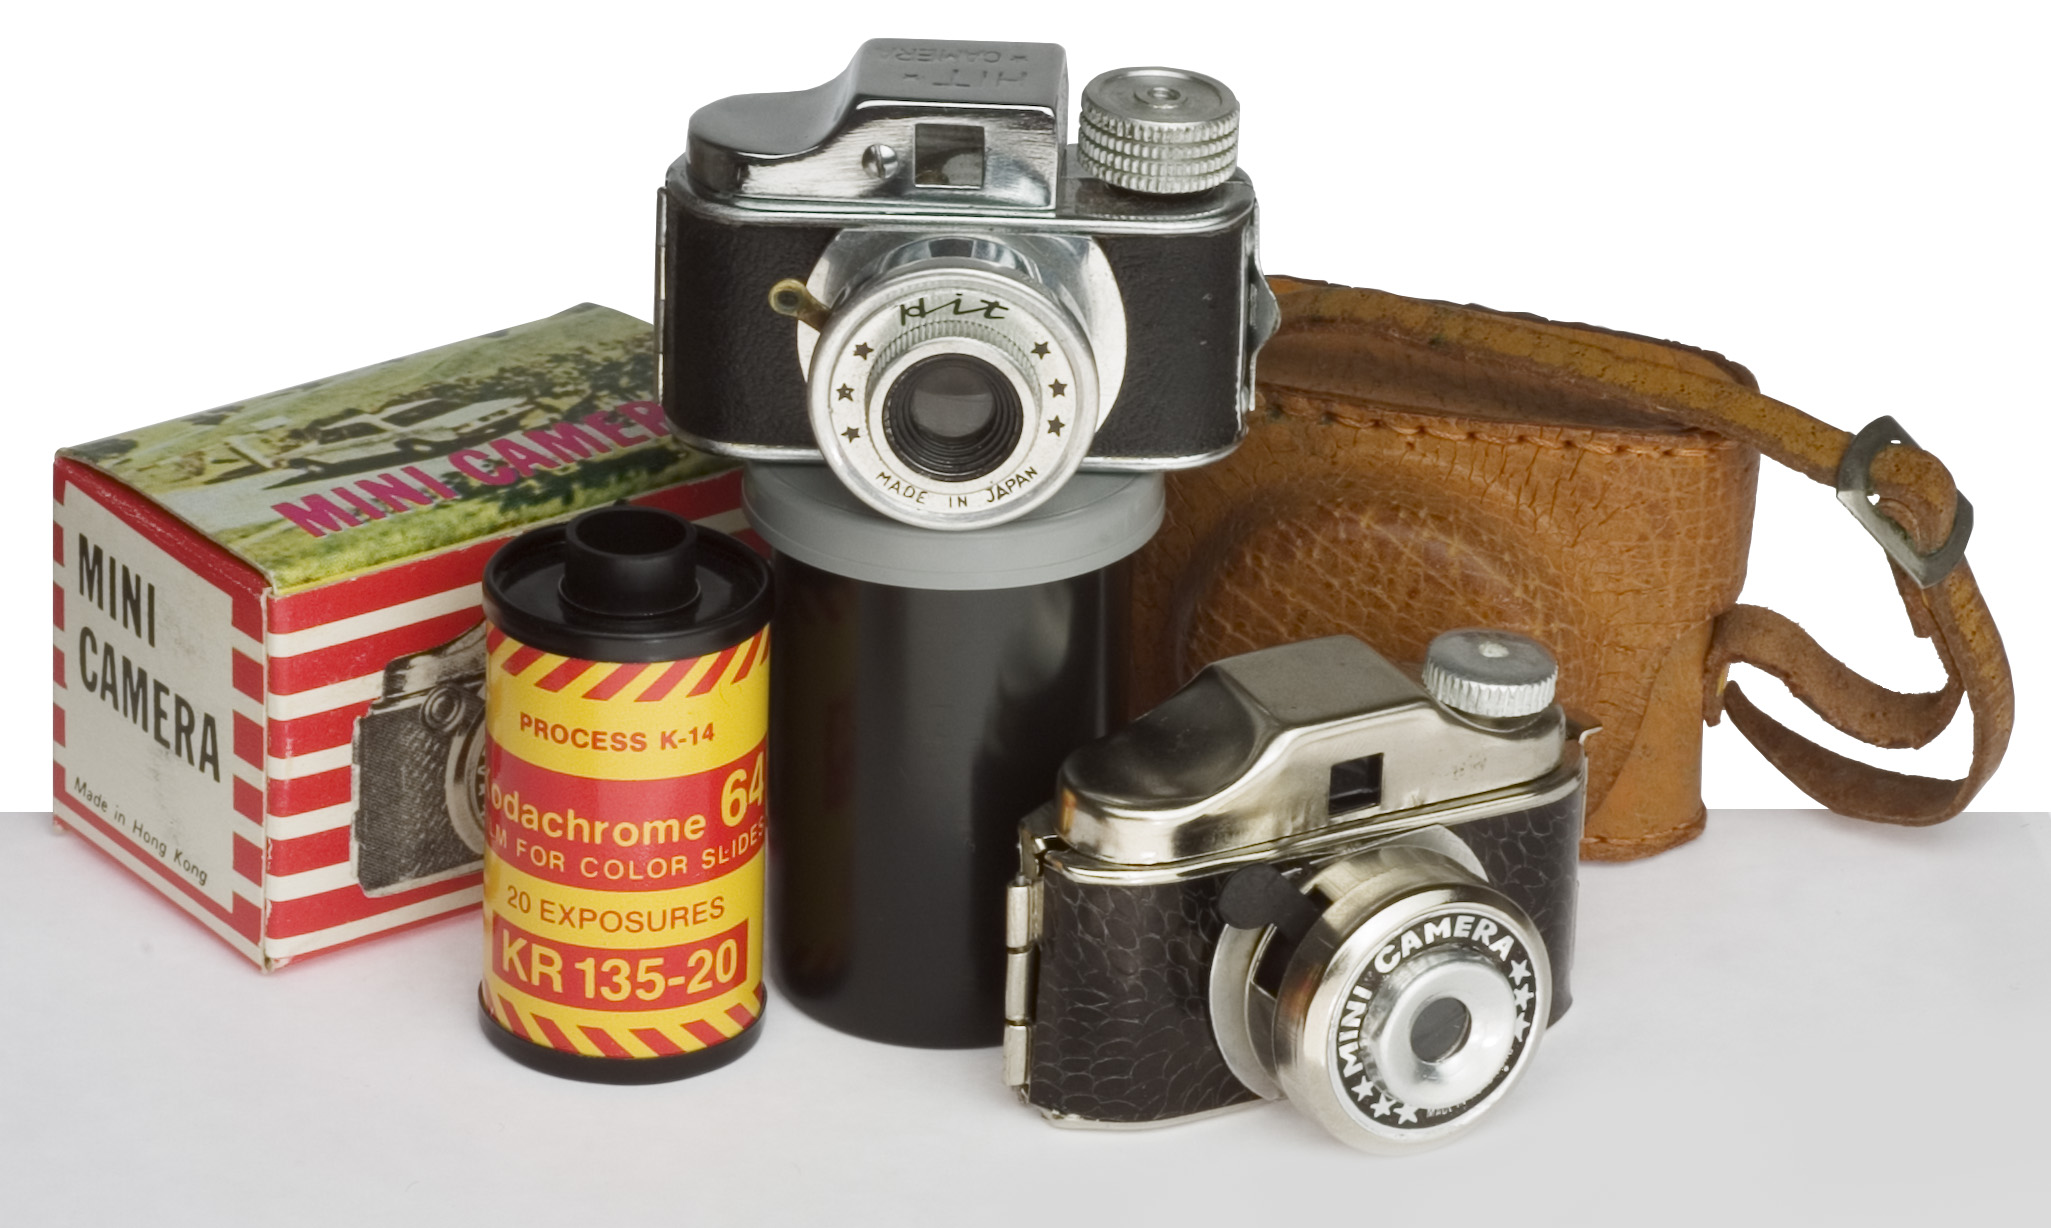 Sub-miniature Japanese cameras from 1950s